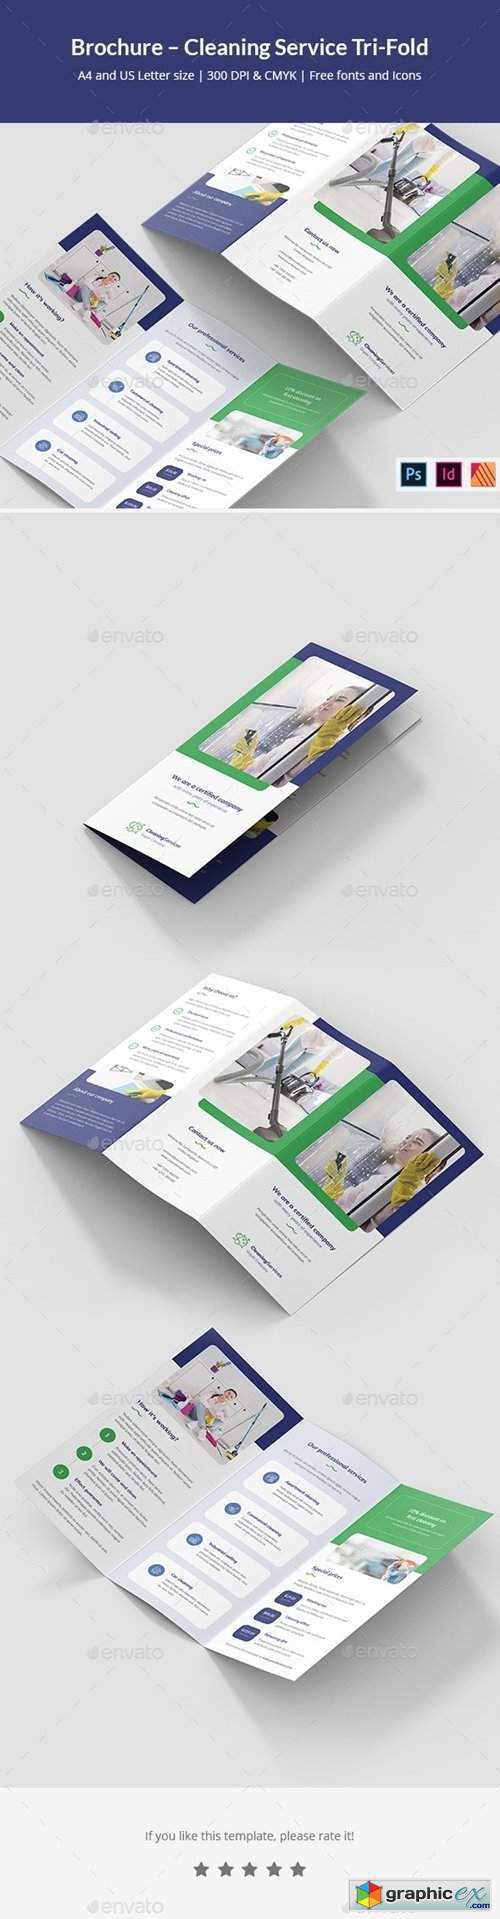 Brochure – Cleaning Service Tri-Fold